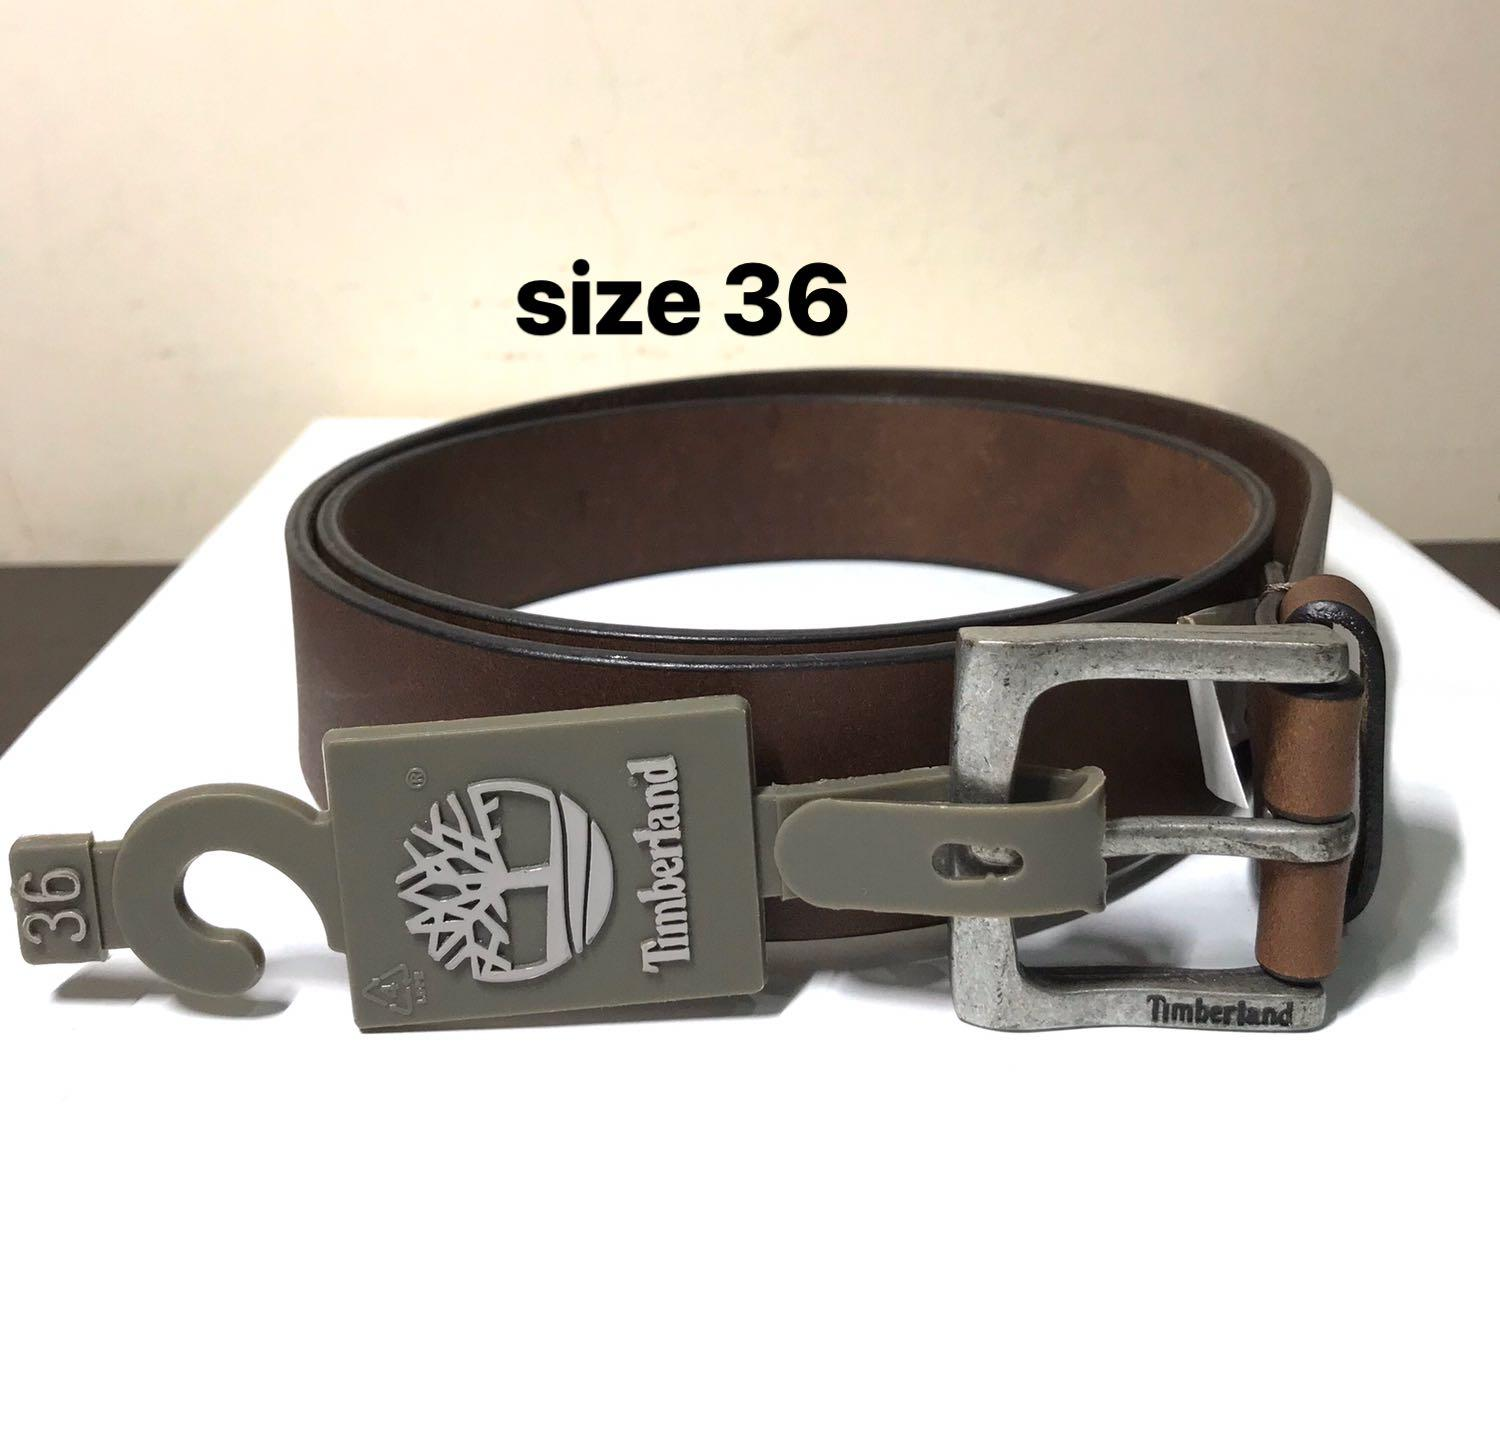 Timberland. Timberland Casual Belt. Genuine Leather. Size36. Thickness 36mm. Matt Steel BUCKLE. Deep Brown Belt Leather. Great with Jeans. Polished Smooth Upper leather and Raw leather underside. AUTHENTIC